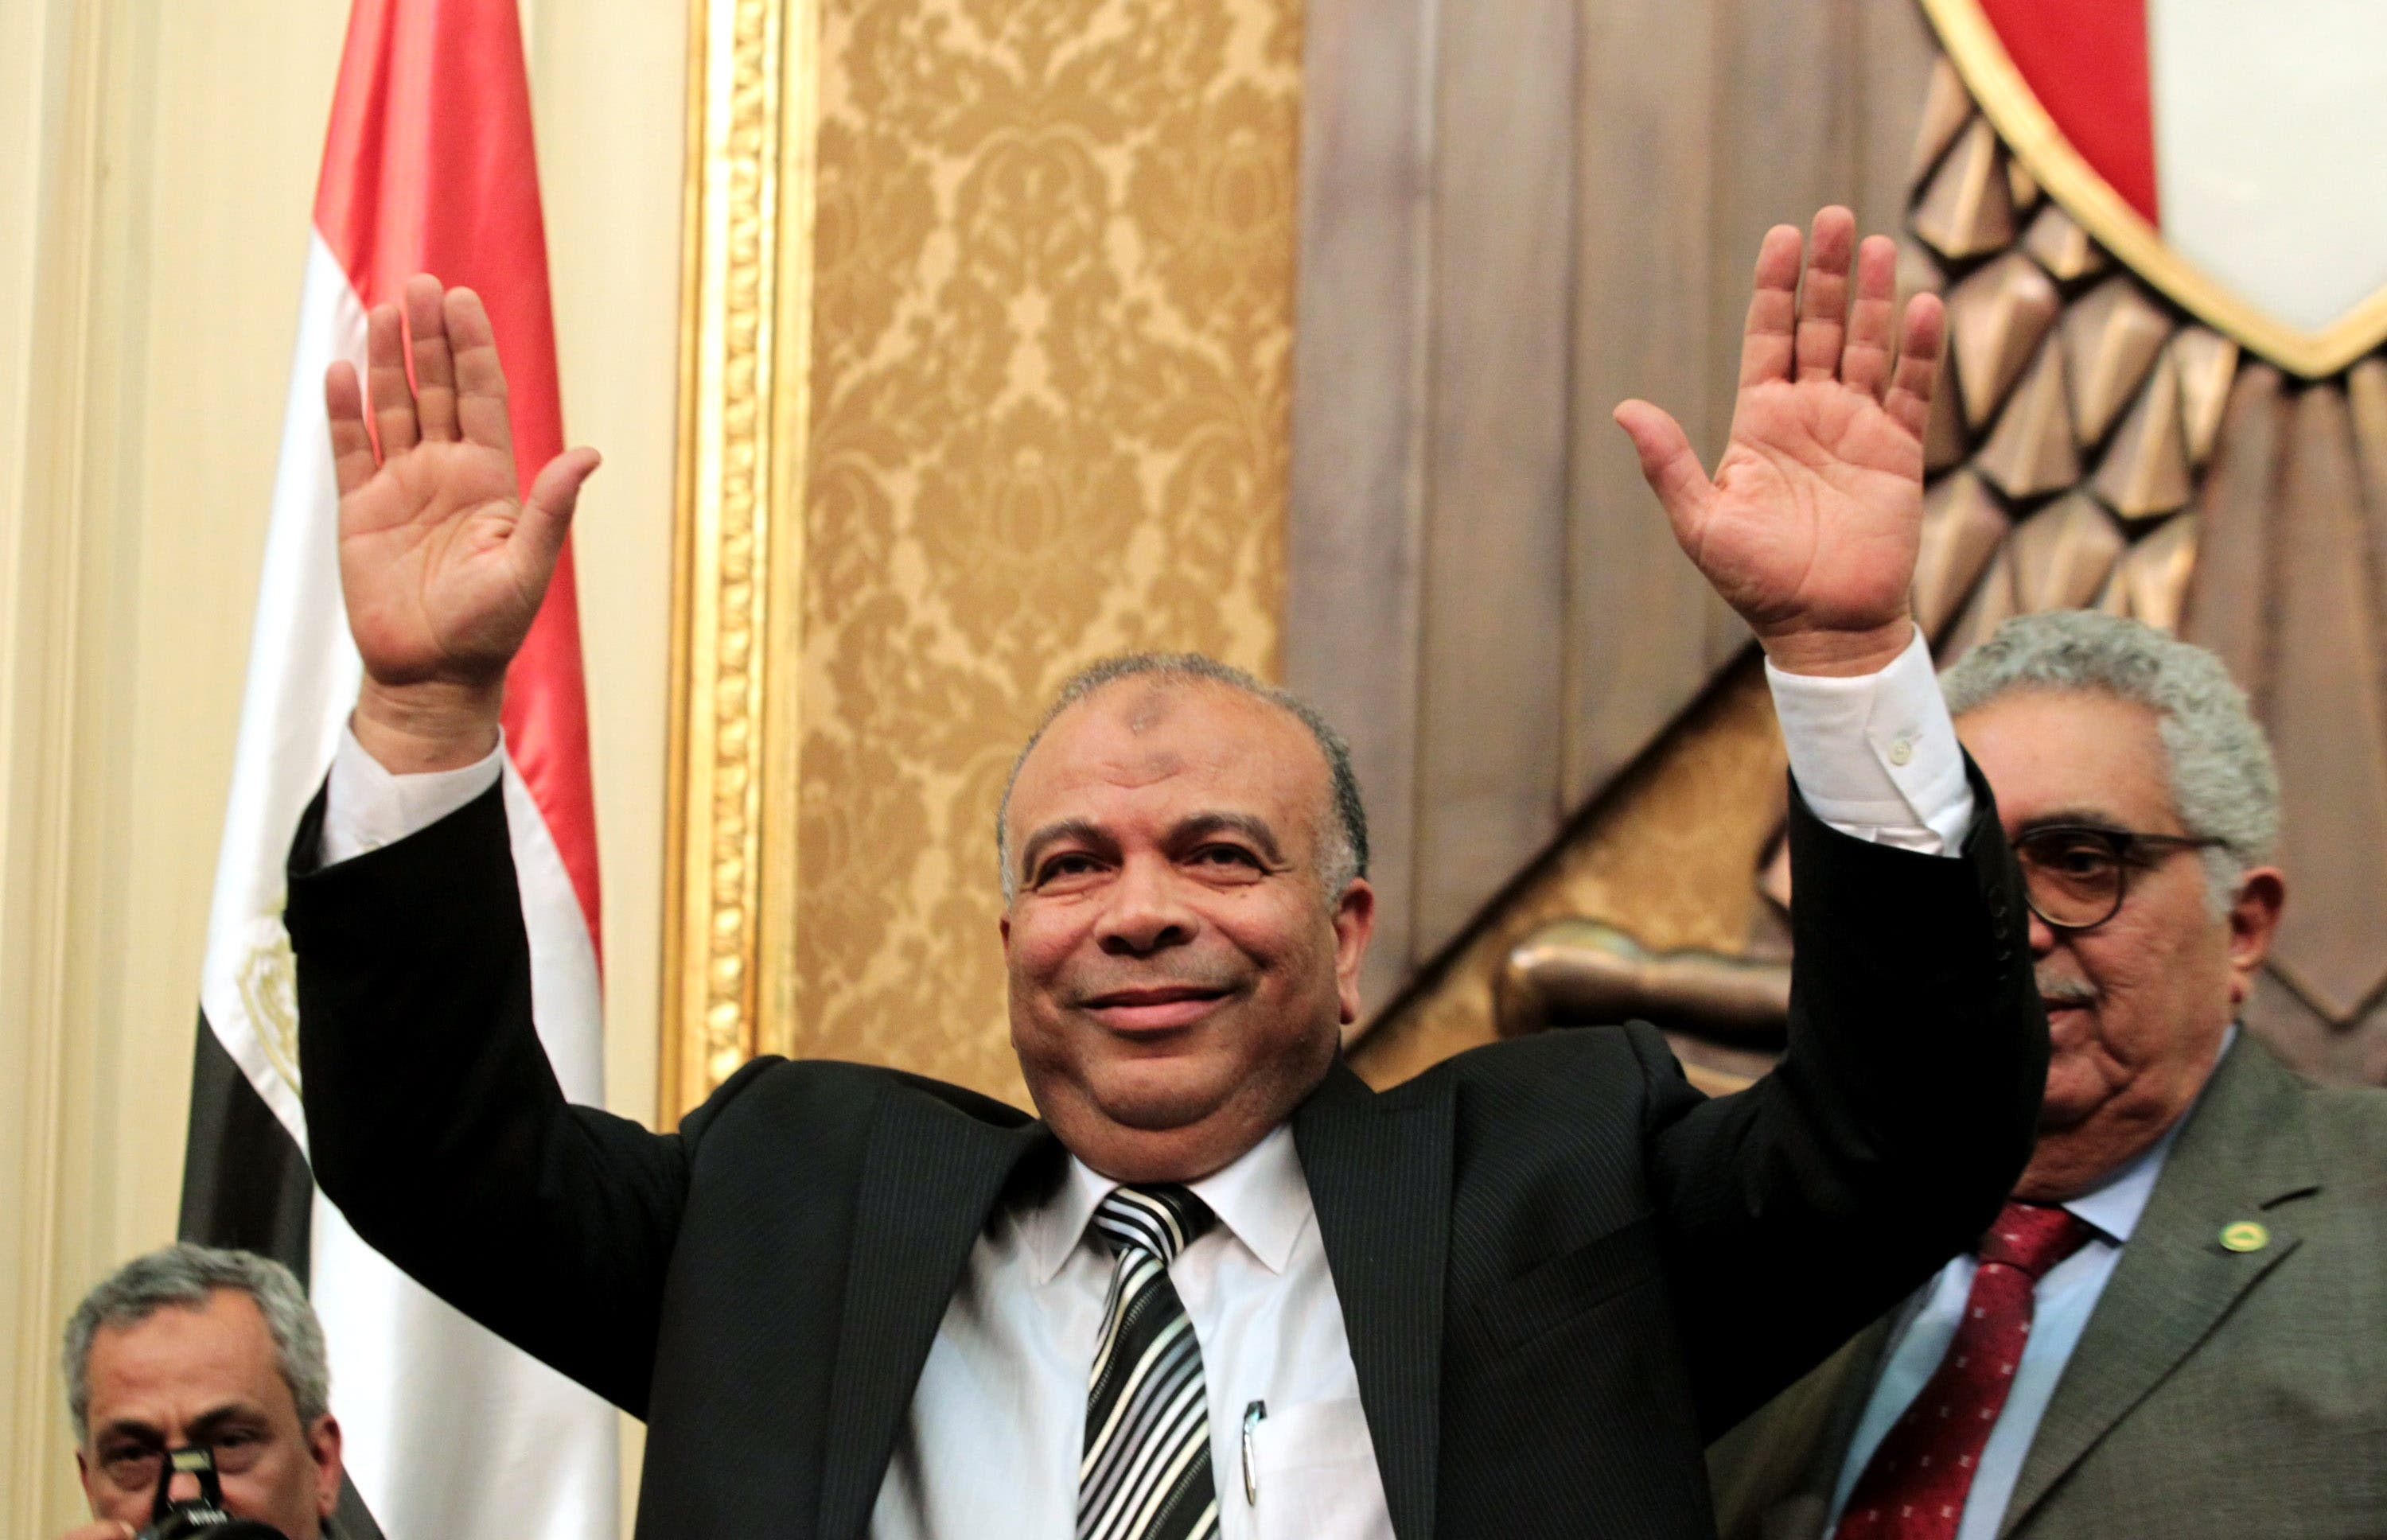 Shown for illustrative purposes- Looking overjoyed here, Speaker of the People's Assembly, Saad al-Katany was not impressed at all with Salafi MP Mamdouh Ismail's religious outbreak.